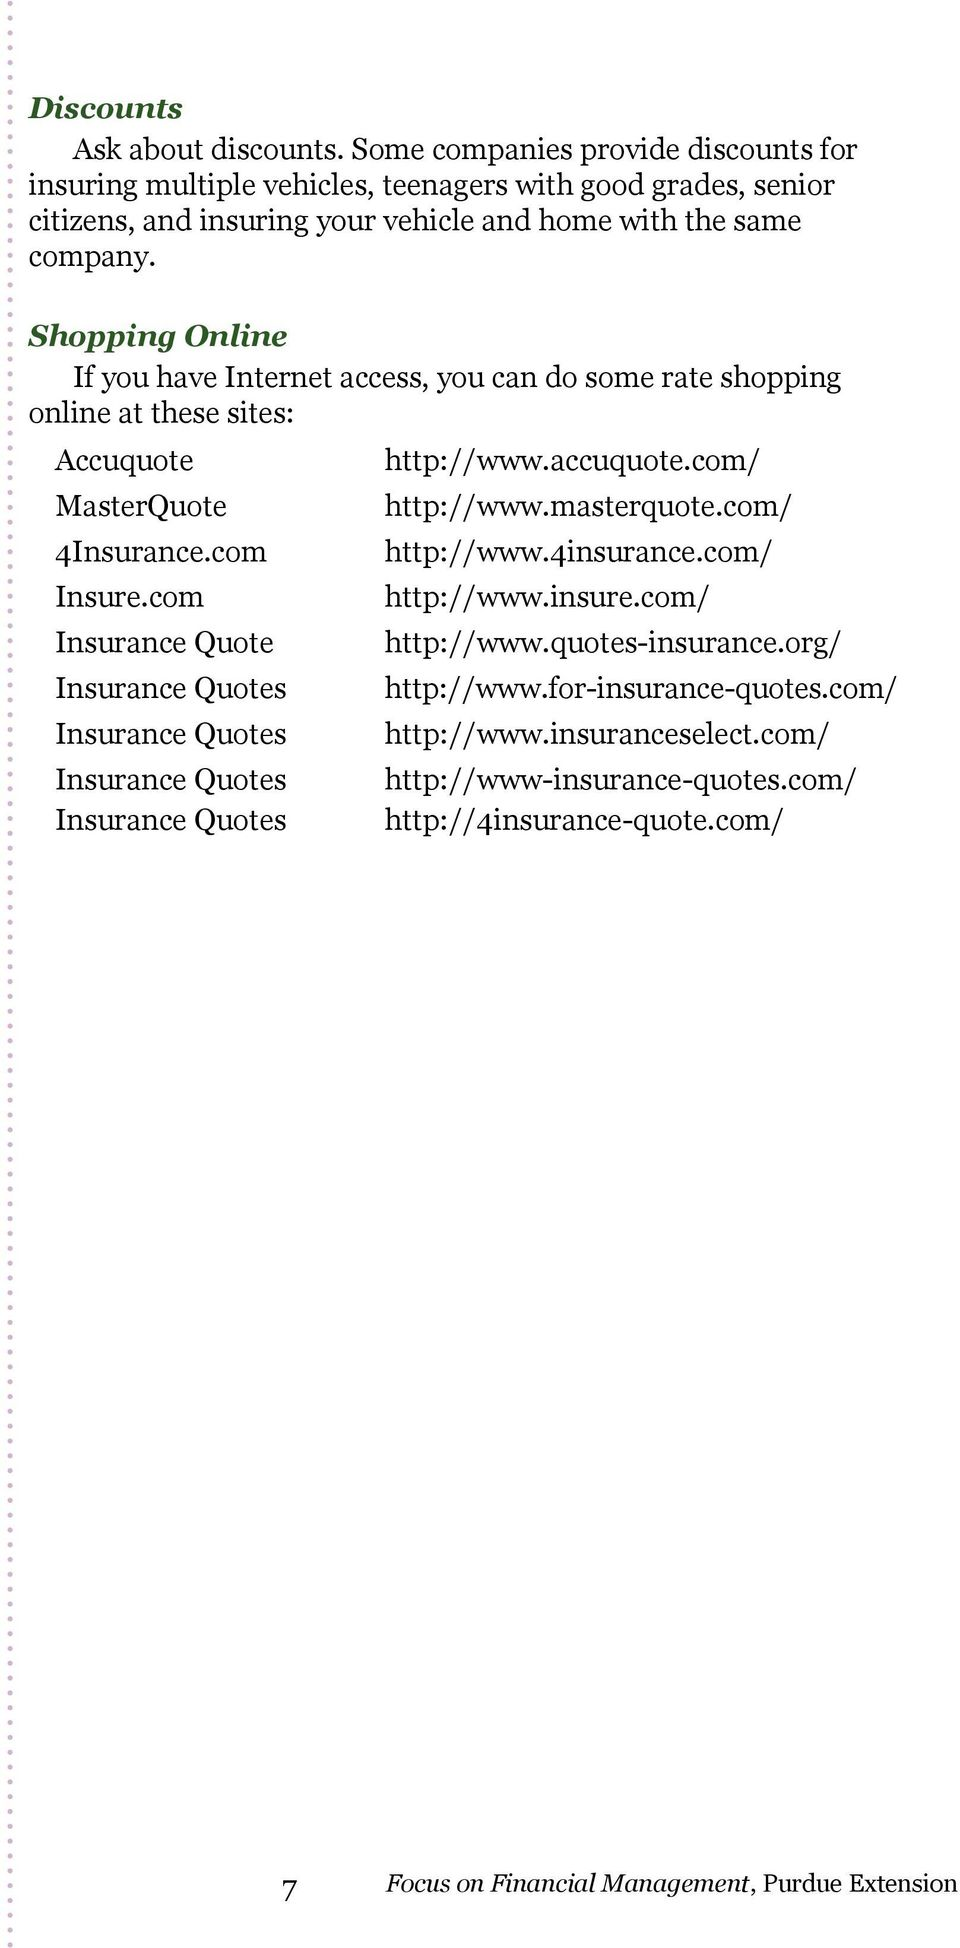 Shopping Online If you have Internet access, you can do some rate shopping online at these sites: Accuquote MasterQuote 4Insurance.com Insure.